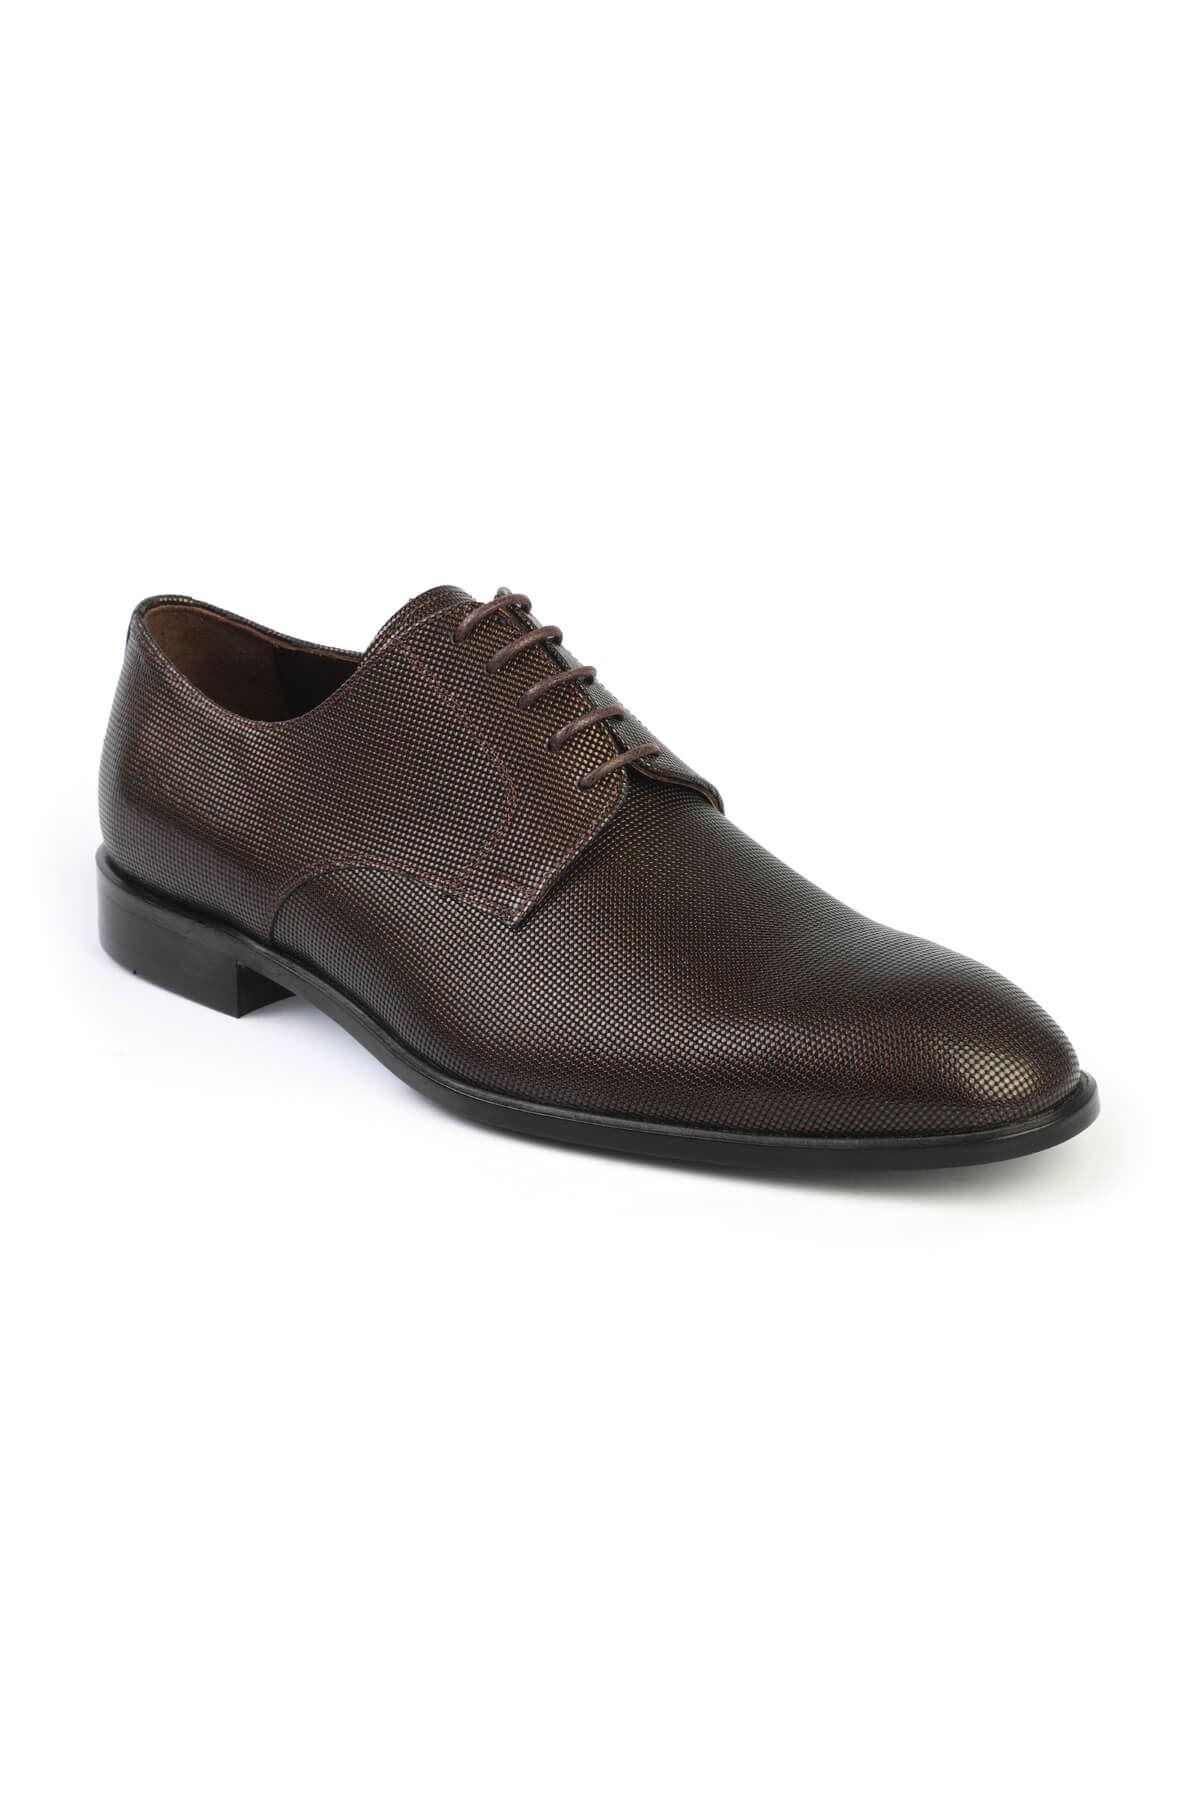 Libero 2716 Brown Classic Shoes